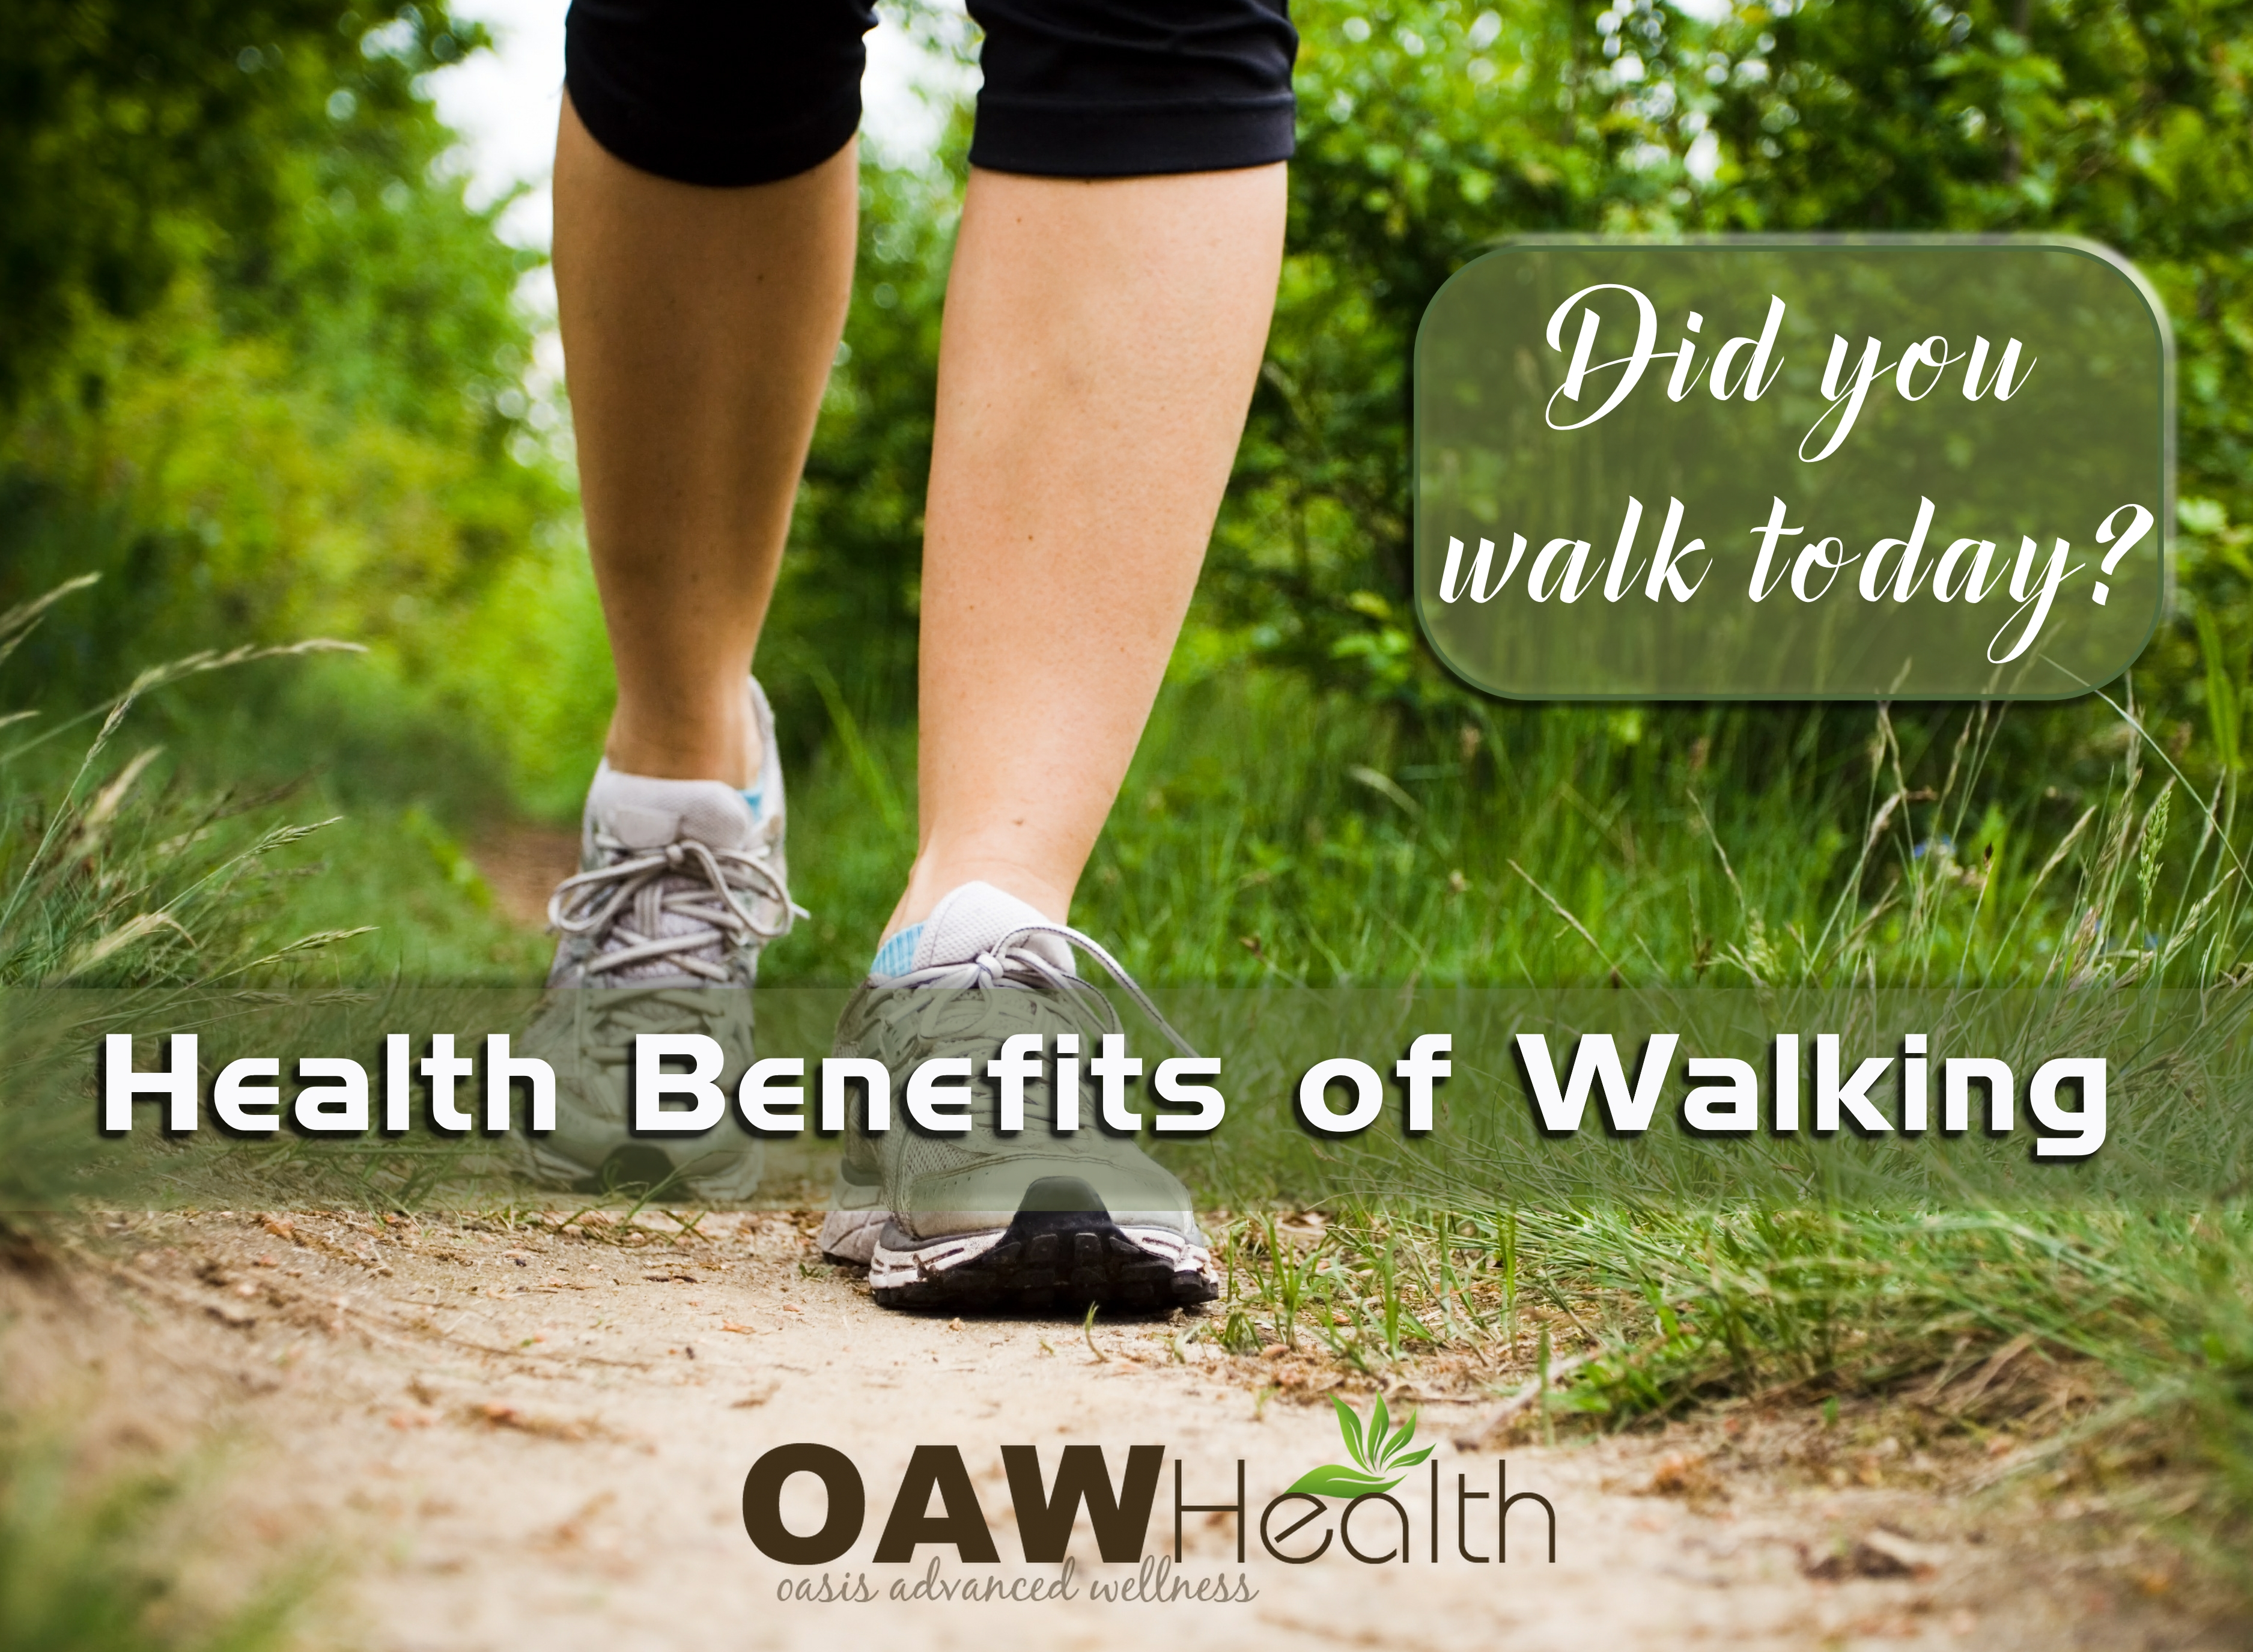 Health Benefits of Daily Walking